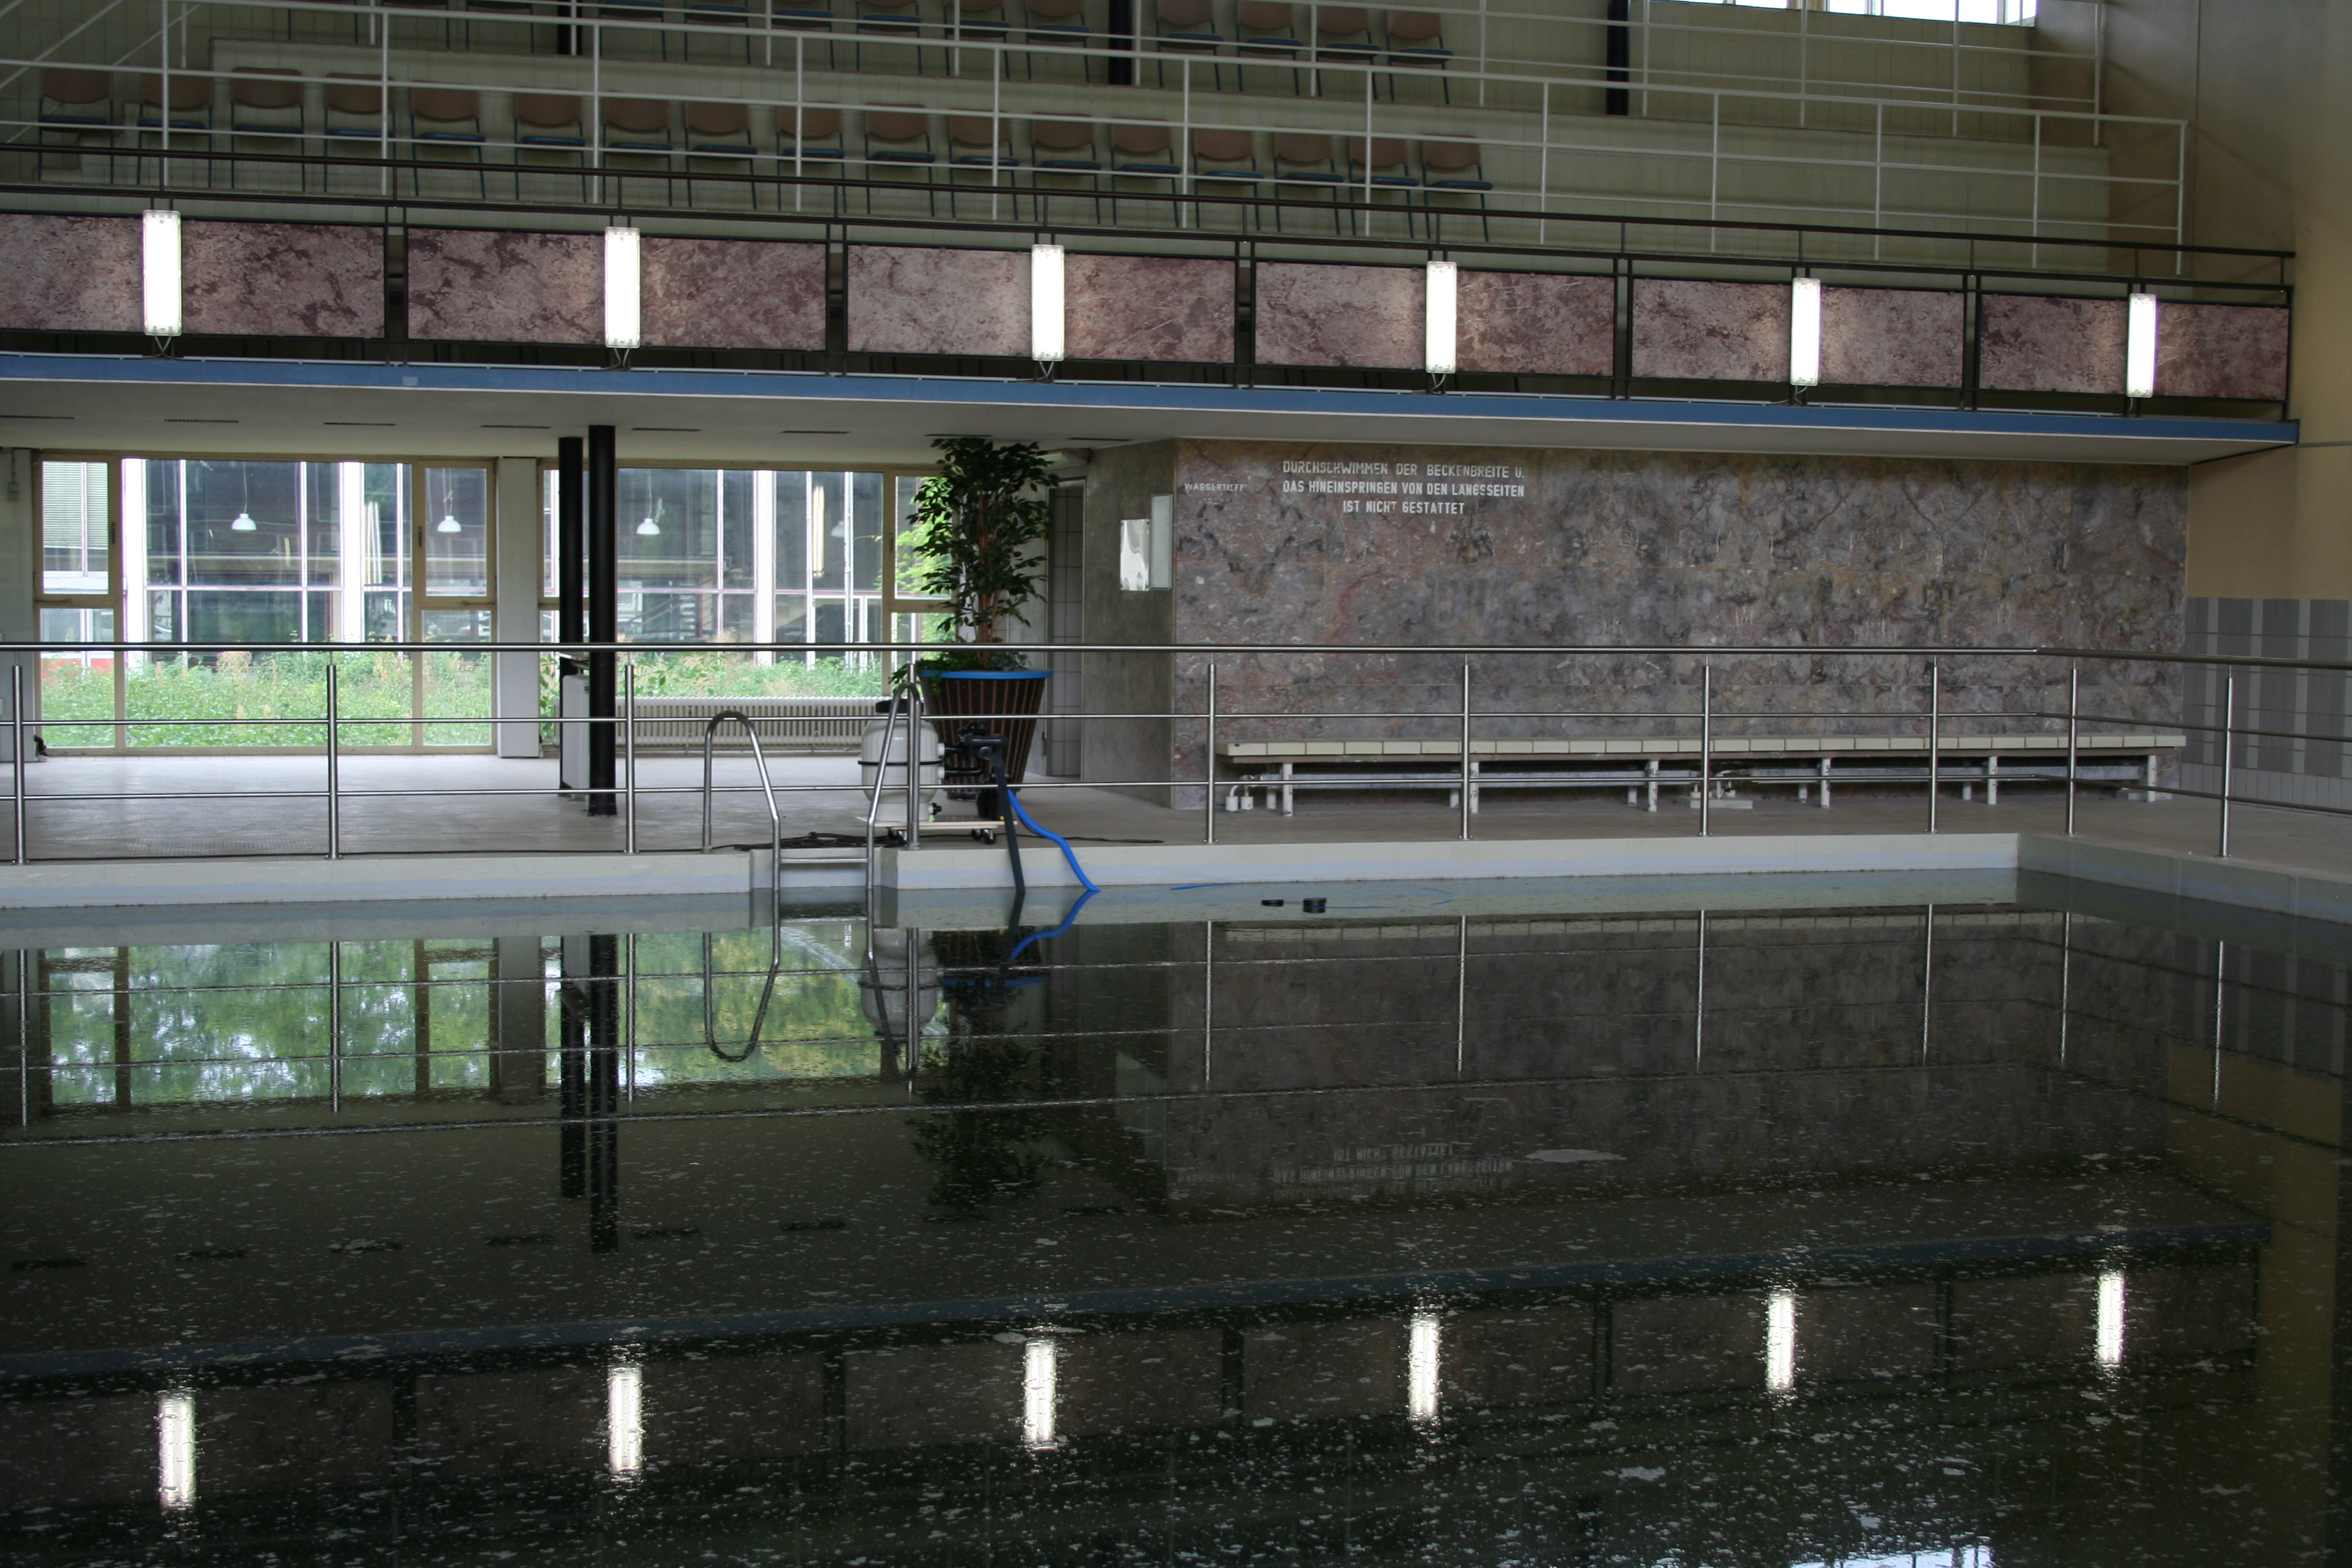 schwimmbad nord as